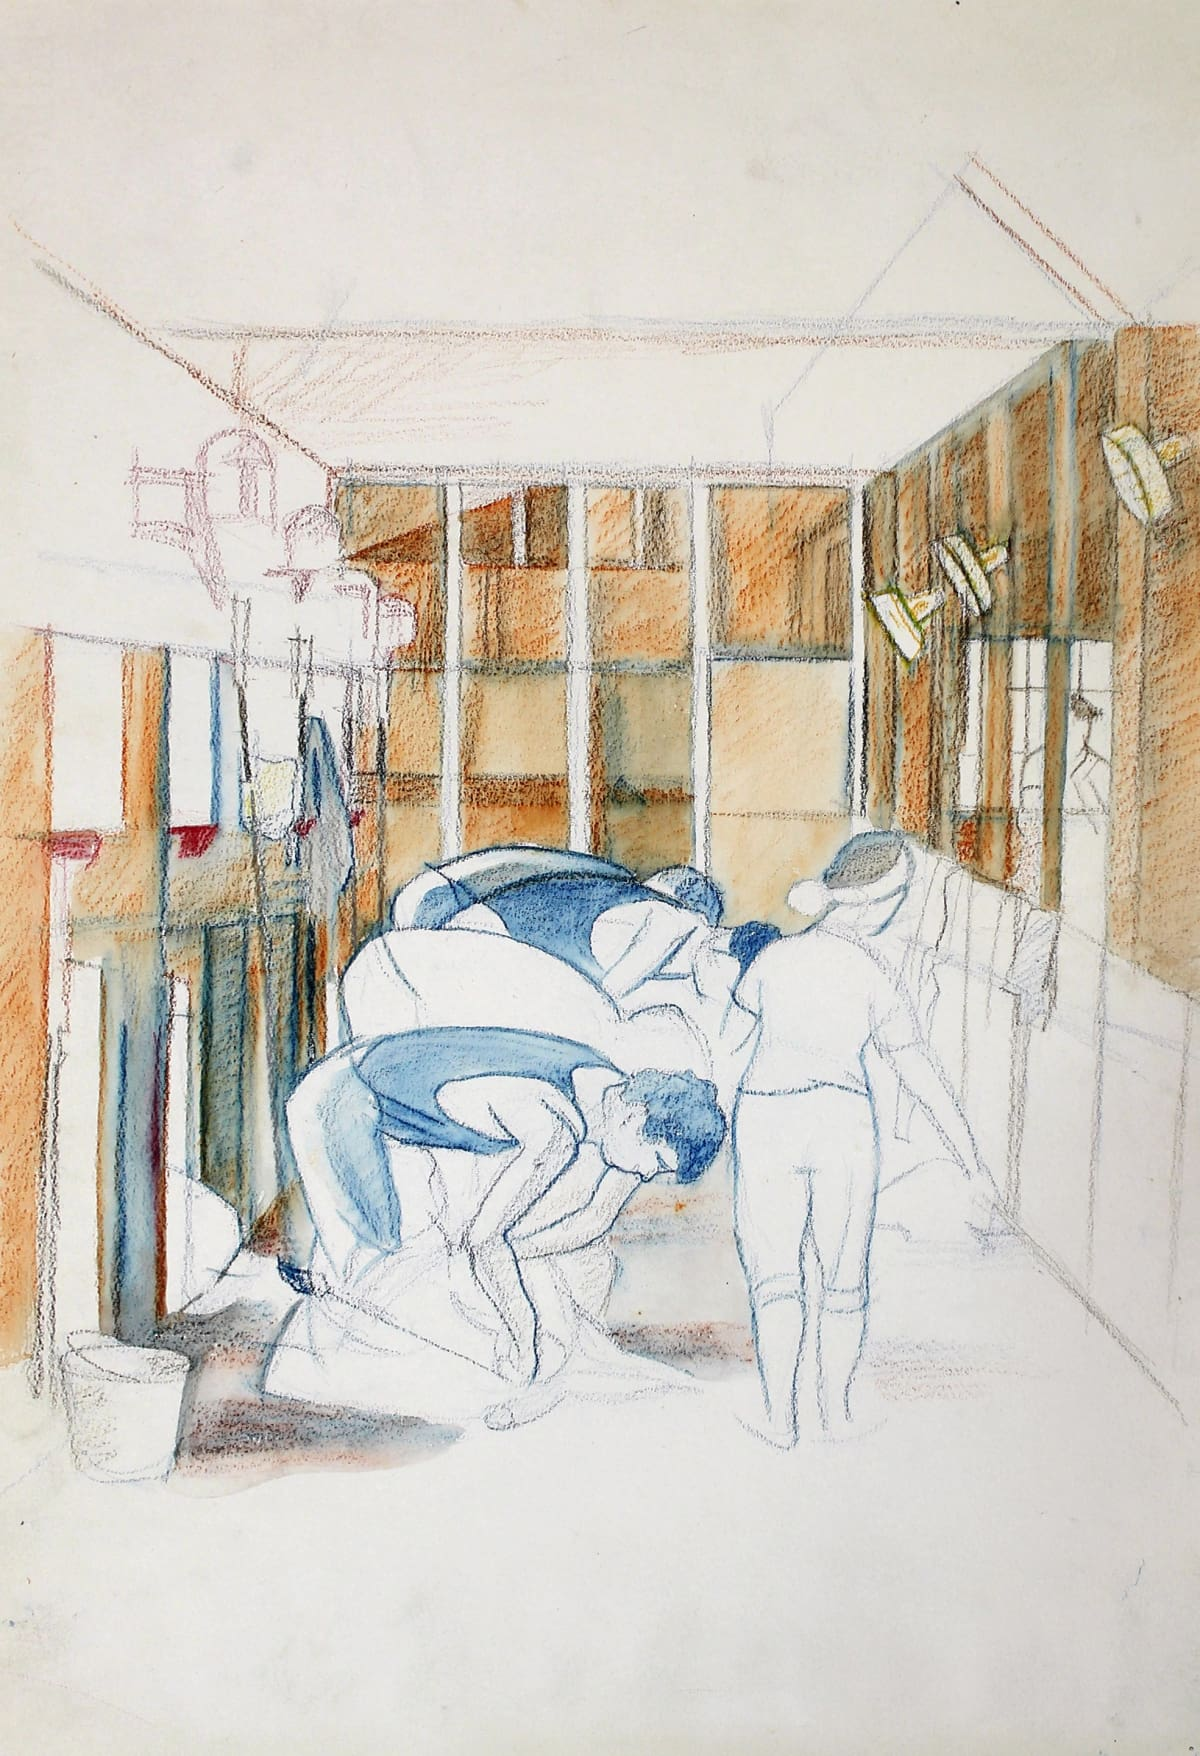 Rita Angus Shearing Scene, Takapau, 1965 Watercolour and crayon on paper 15.4 x 13.6 in 39 x 34.5 cm